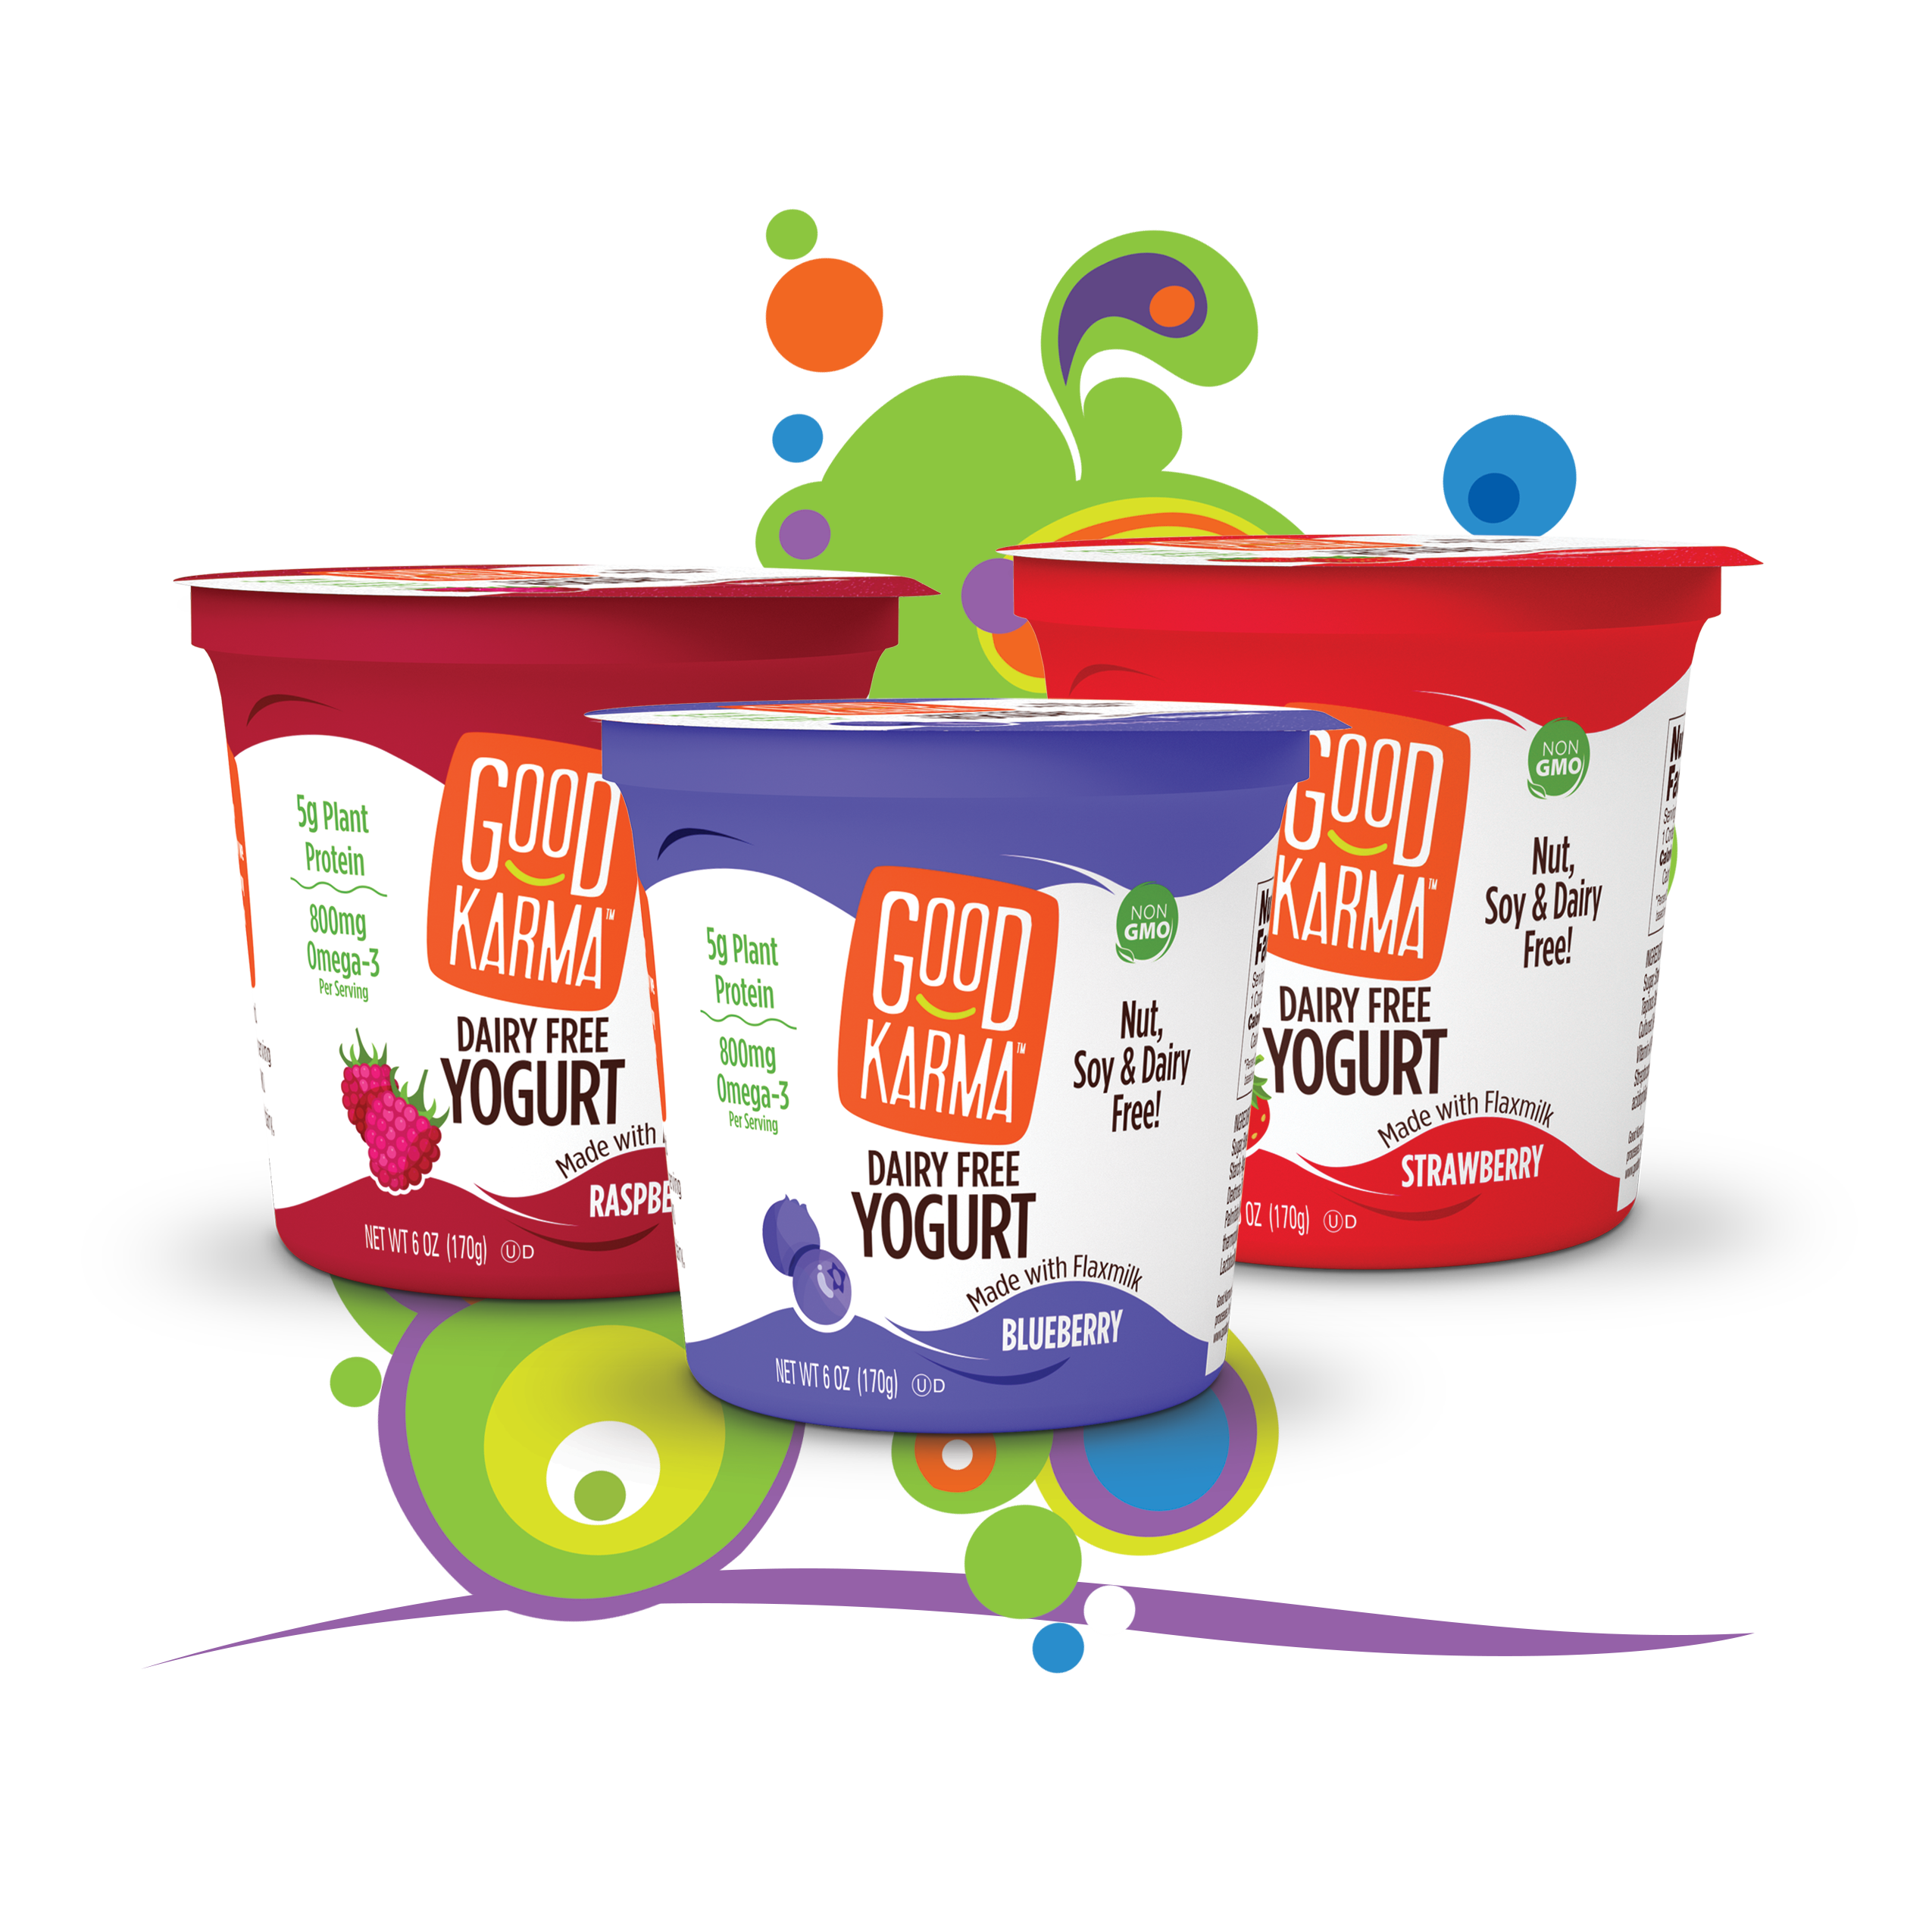 Yogurt clipart dairy product. Press good karma foods